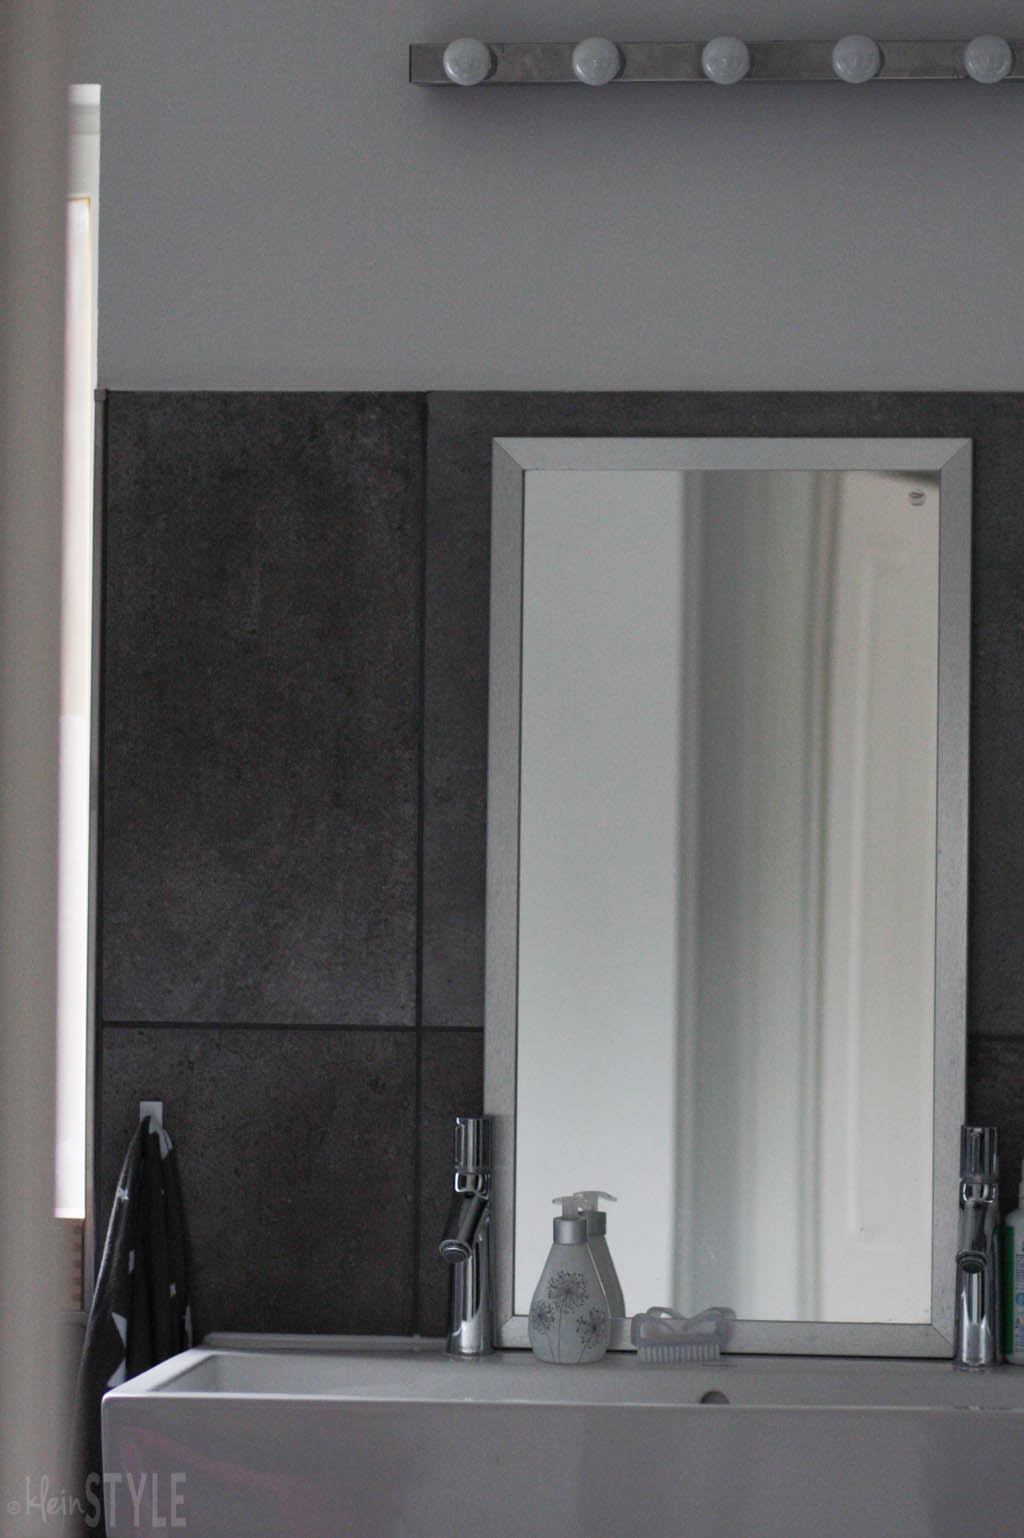 gray-concrete-style-bathroom-make-over-by-kleinstyle-com-4